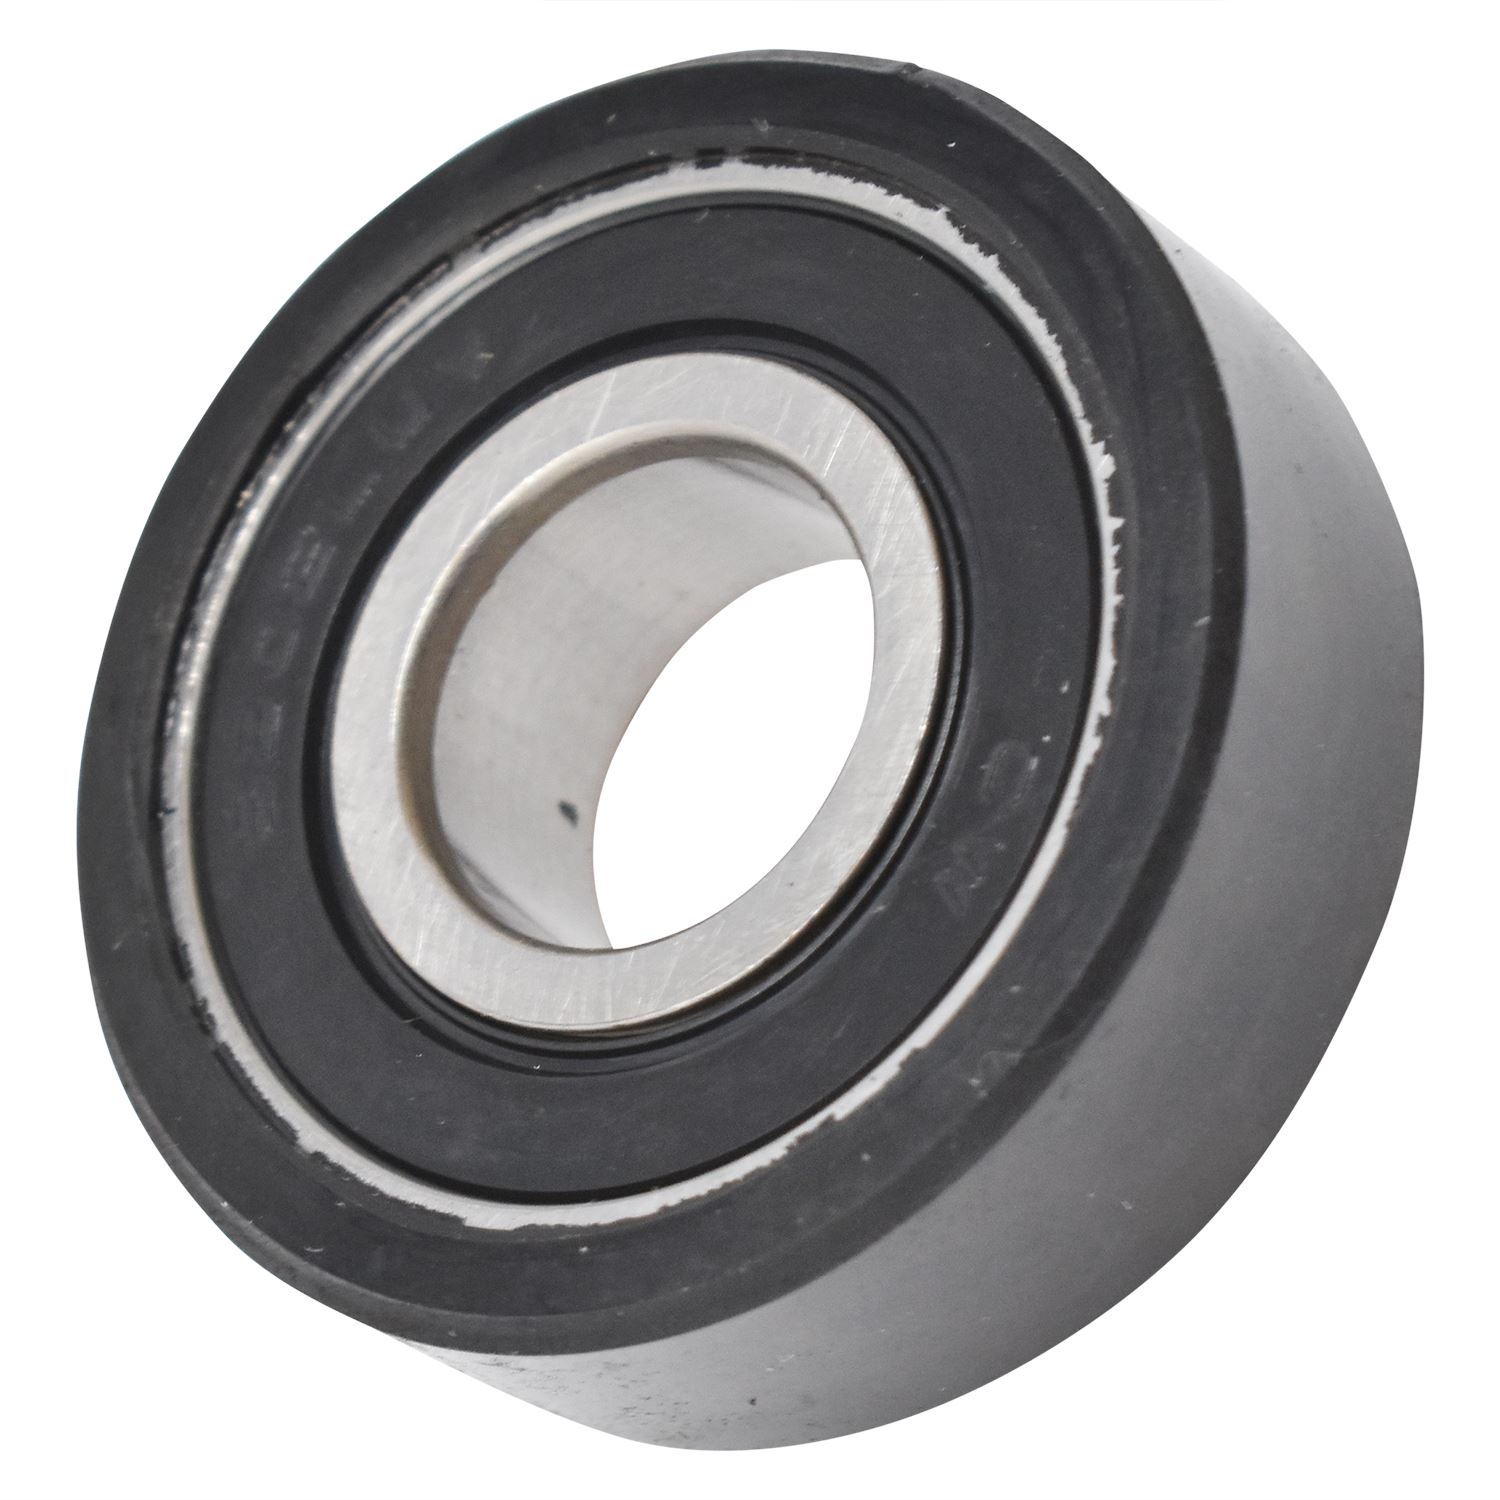 Bearing 6202 LUV for Tumble Dryers - 40004307 Candy